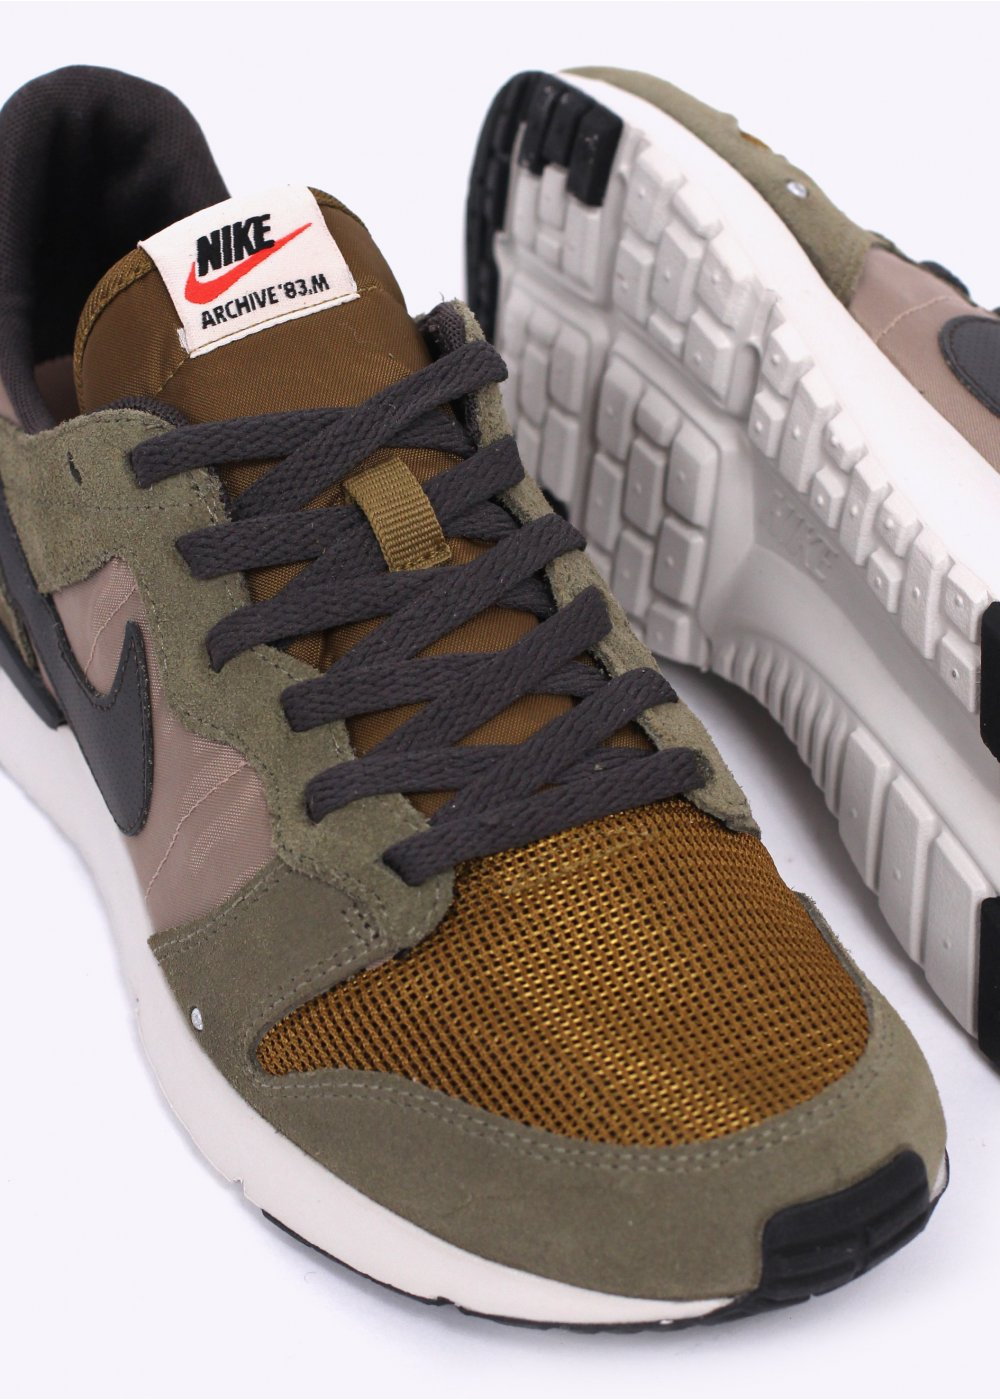 Aguanieve Contagioso Noreste  Nike Archive '83.M Trainers - Medium Olive / Deep Pewter / Desert Camo